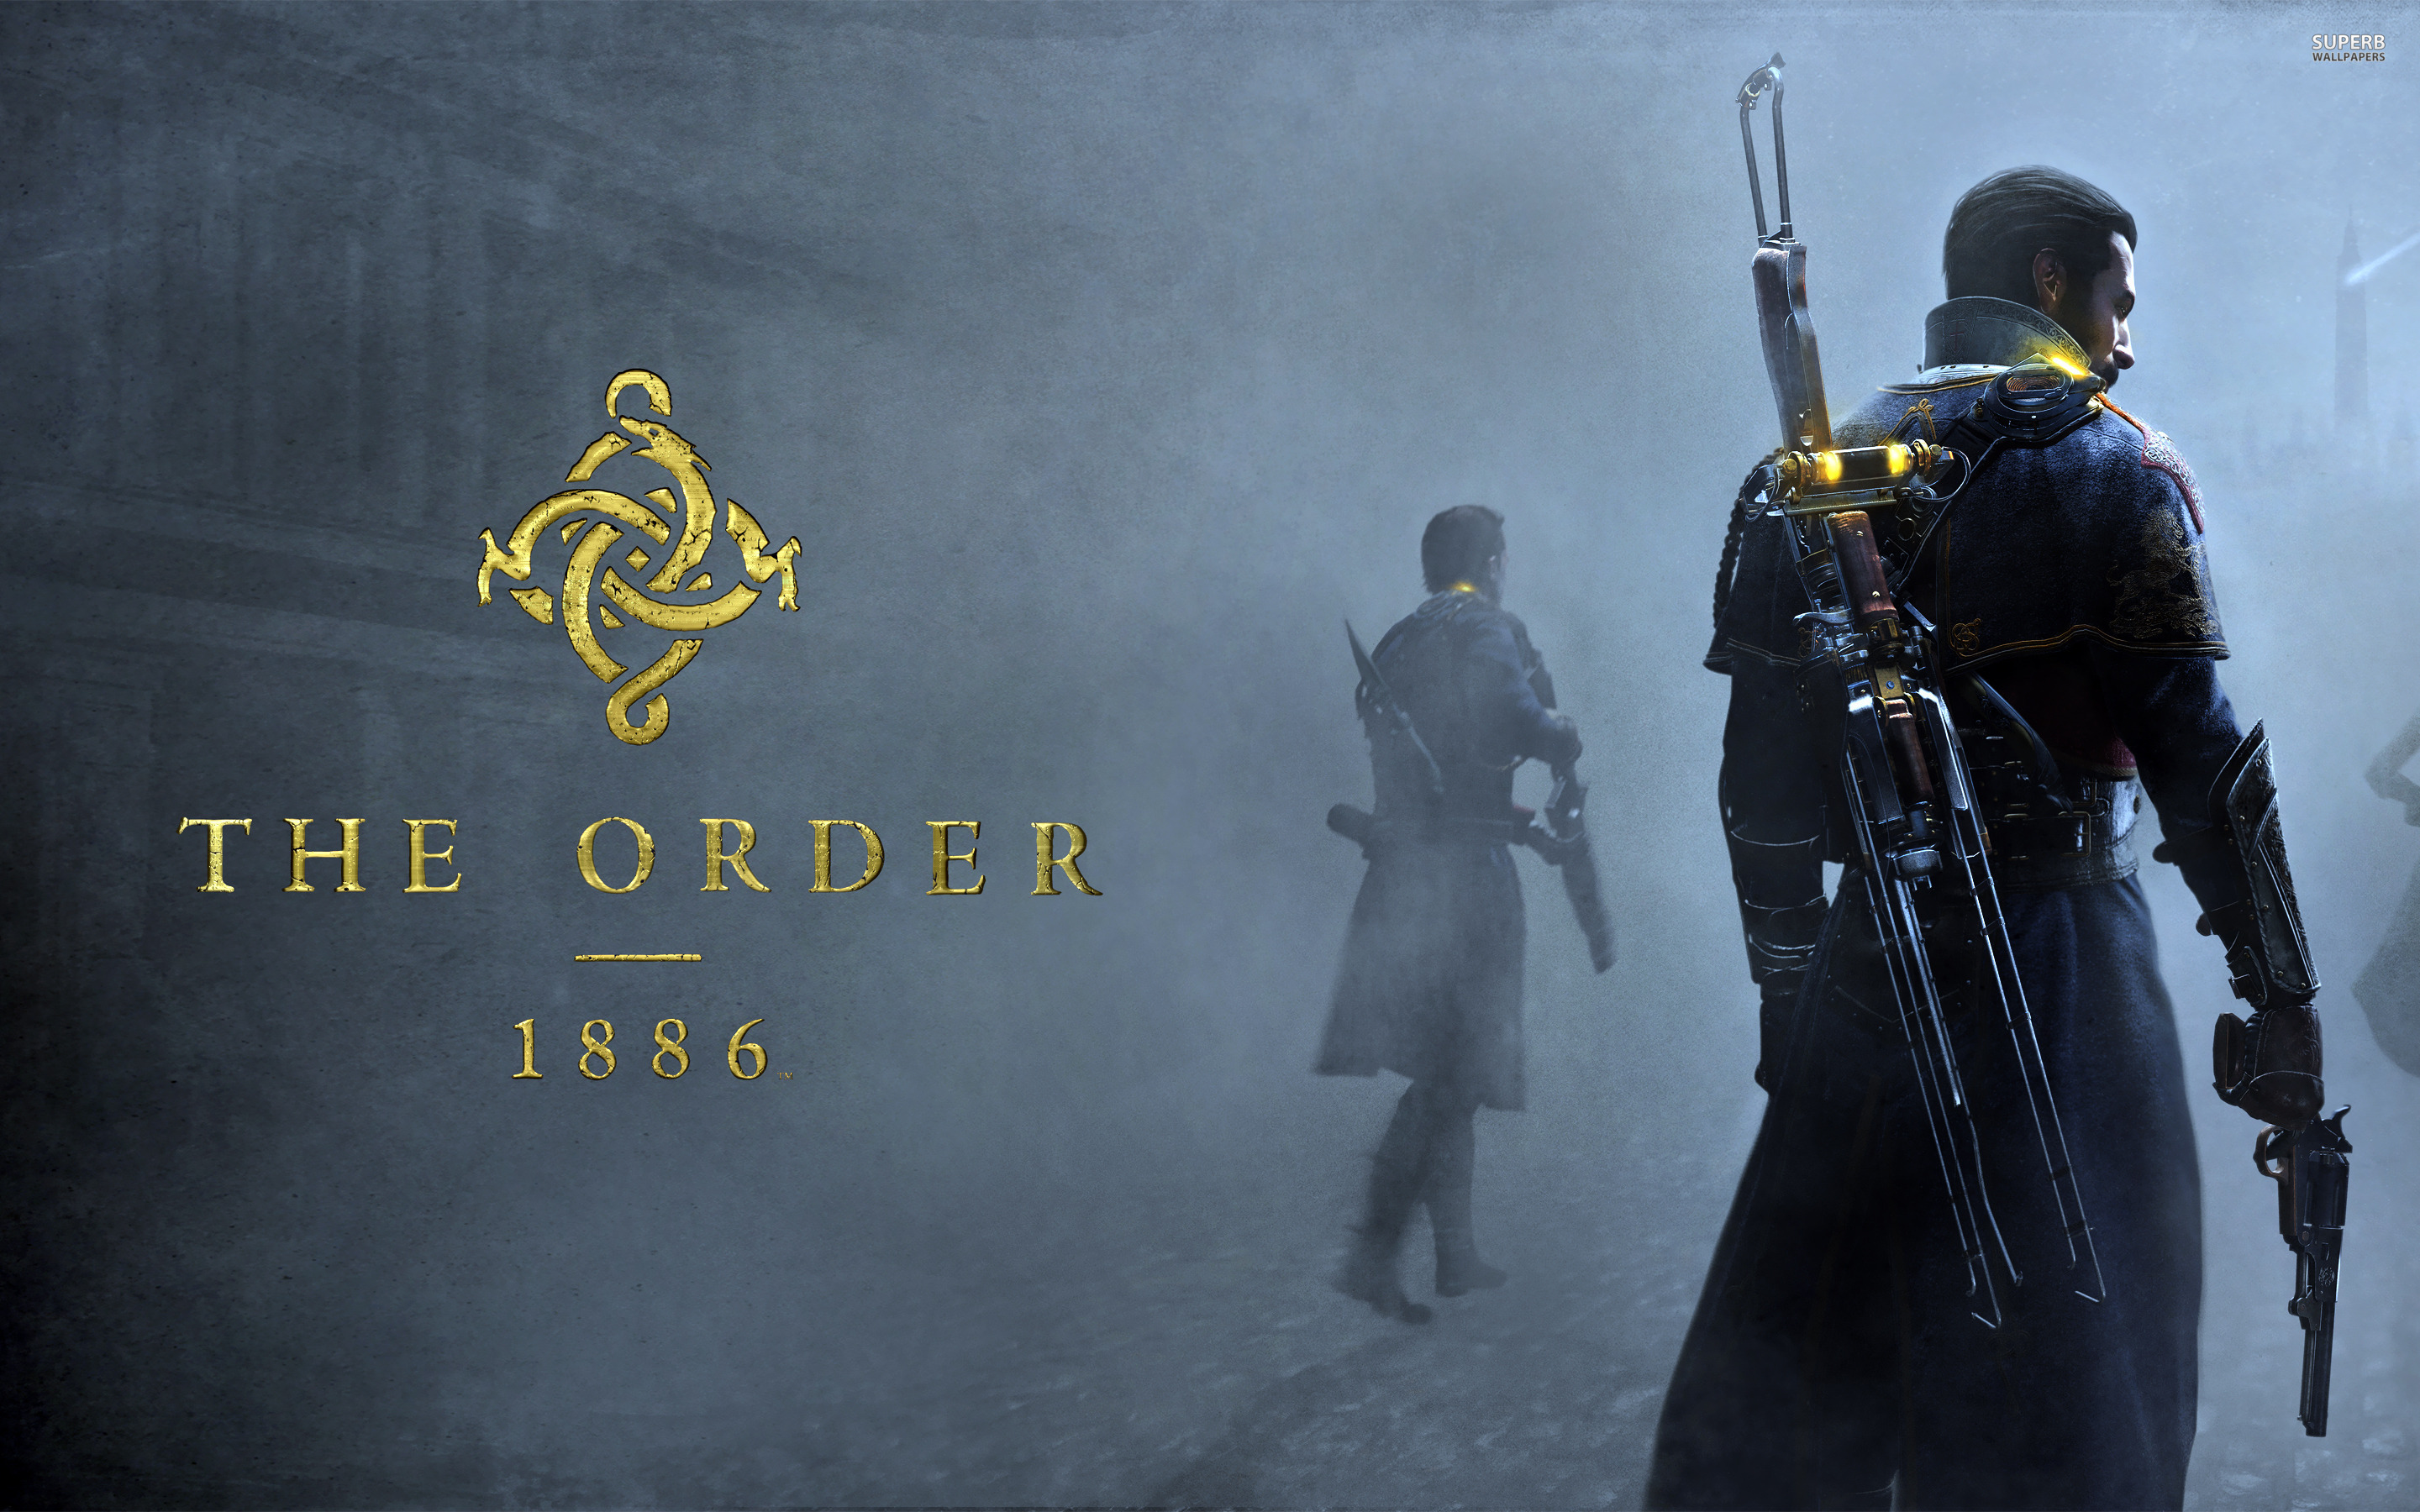 The Order 1886 Wallpaper